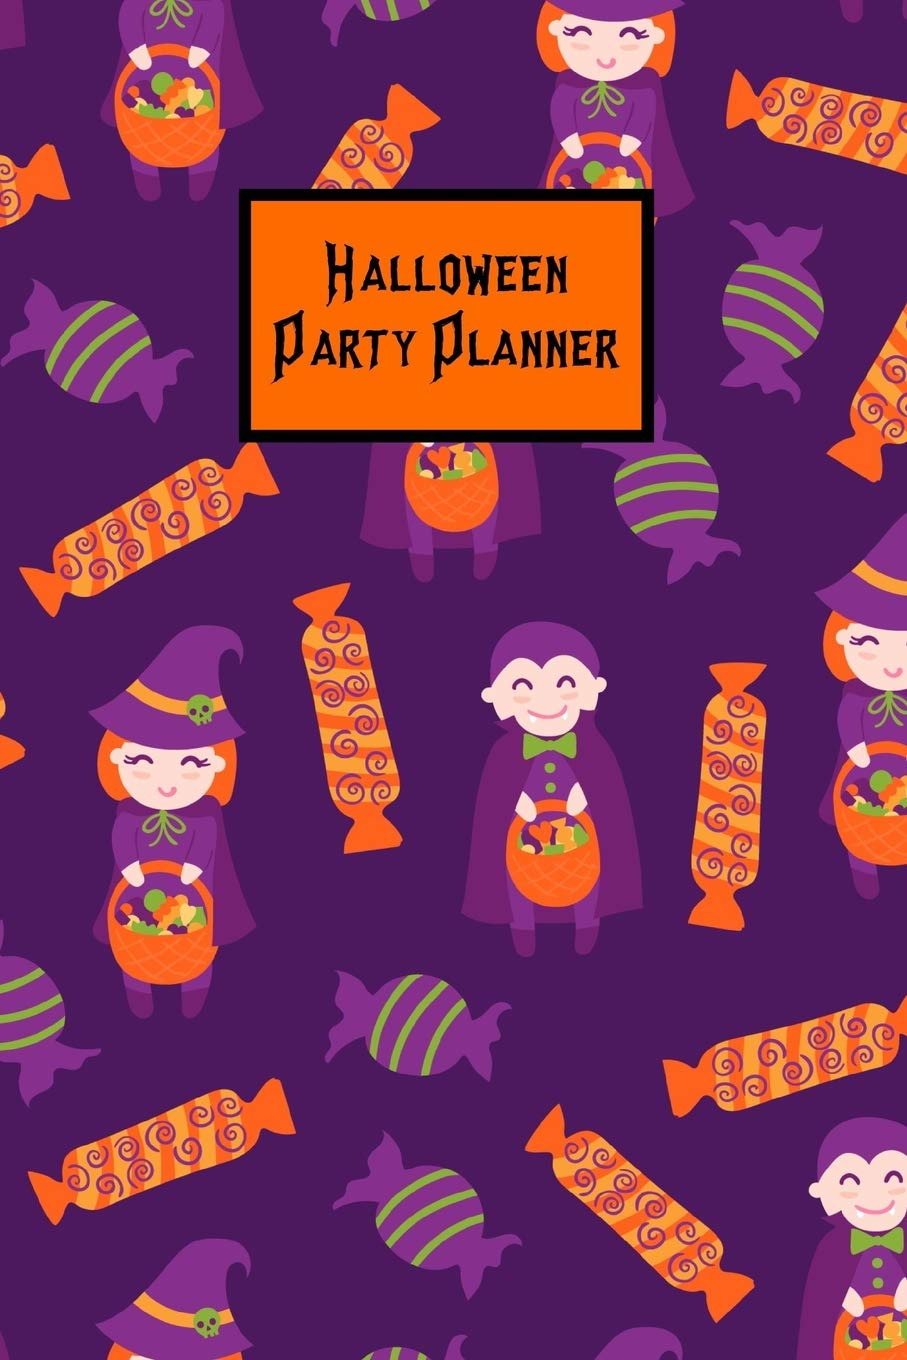 Halloween Party Planner Plan & Bud Your Theme Guests